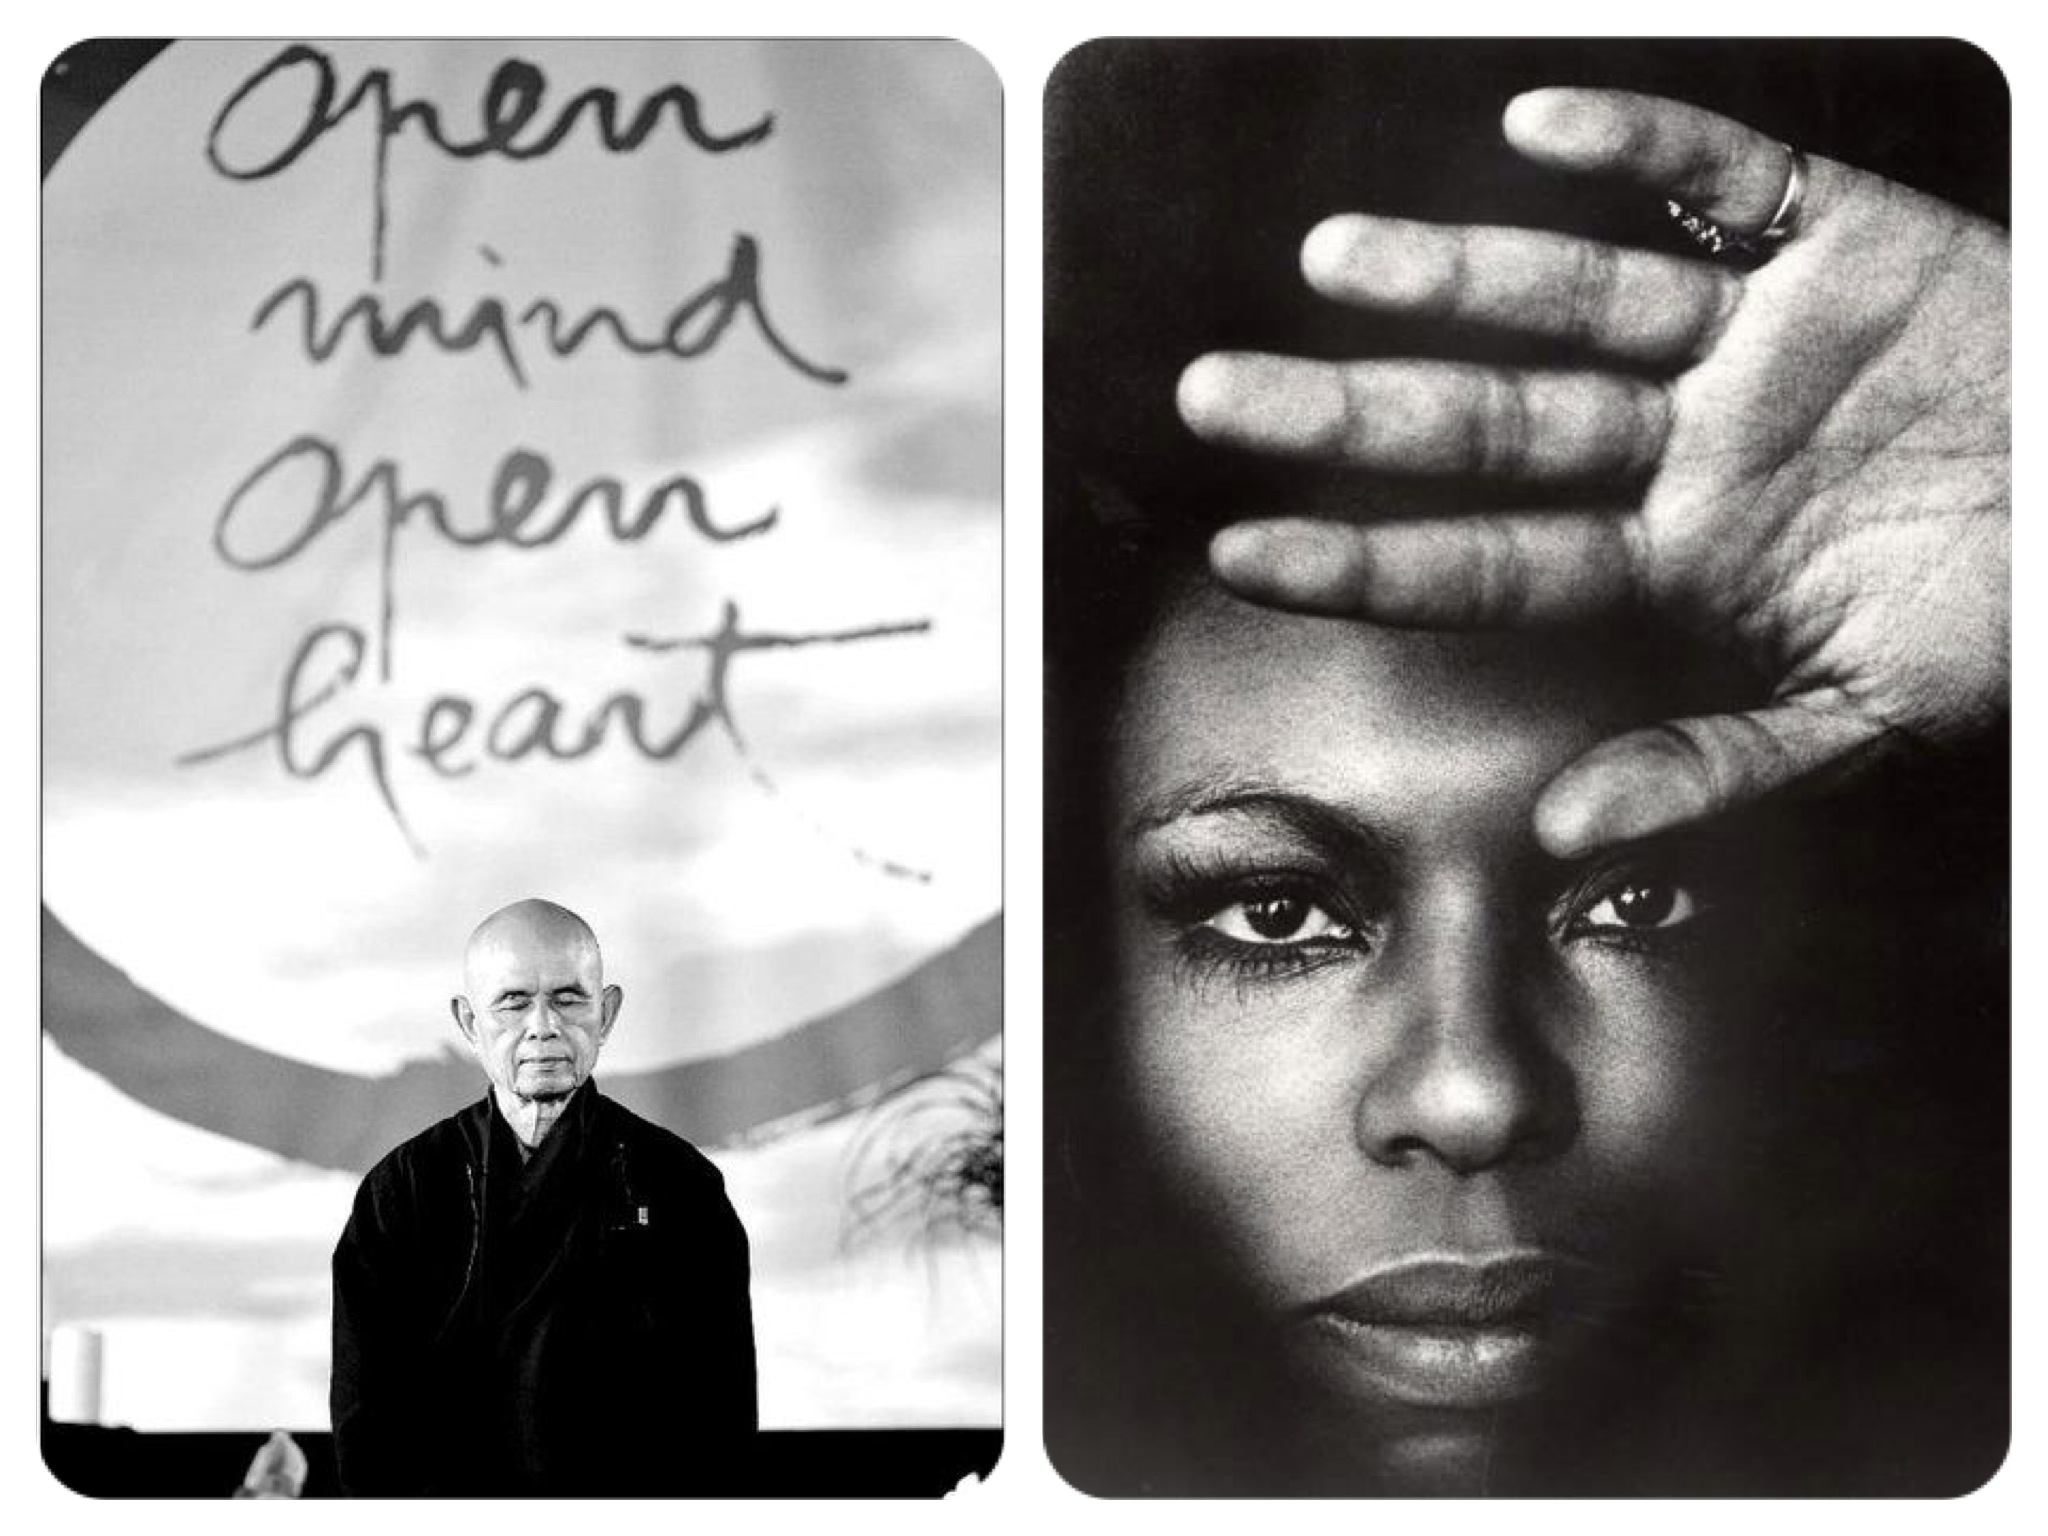 What's wrong with a little Zen and R&B?  Zen Master Thich Nhat Hann & Soul Songstress Roberta Flack - a rare combo